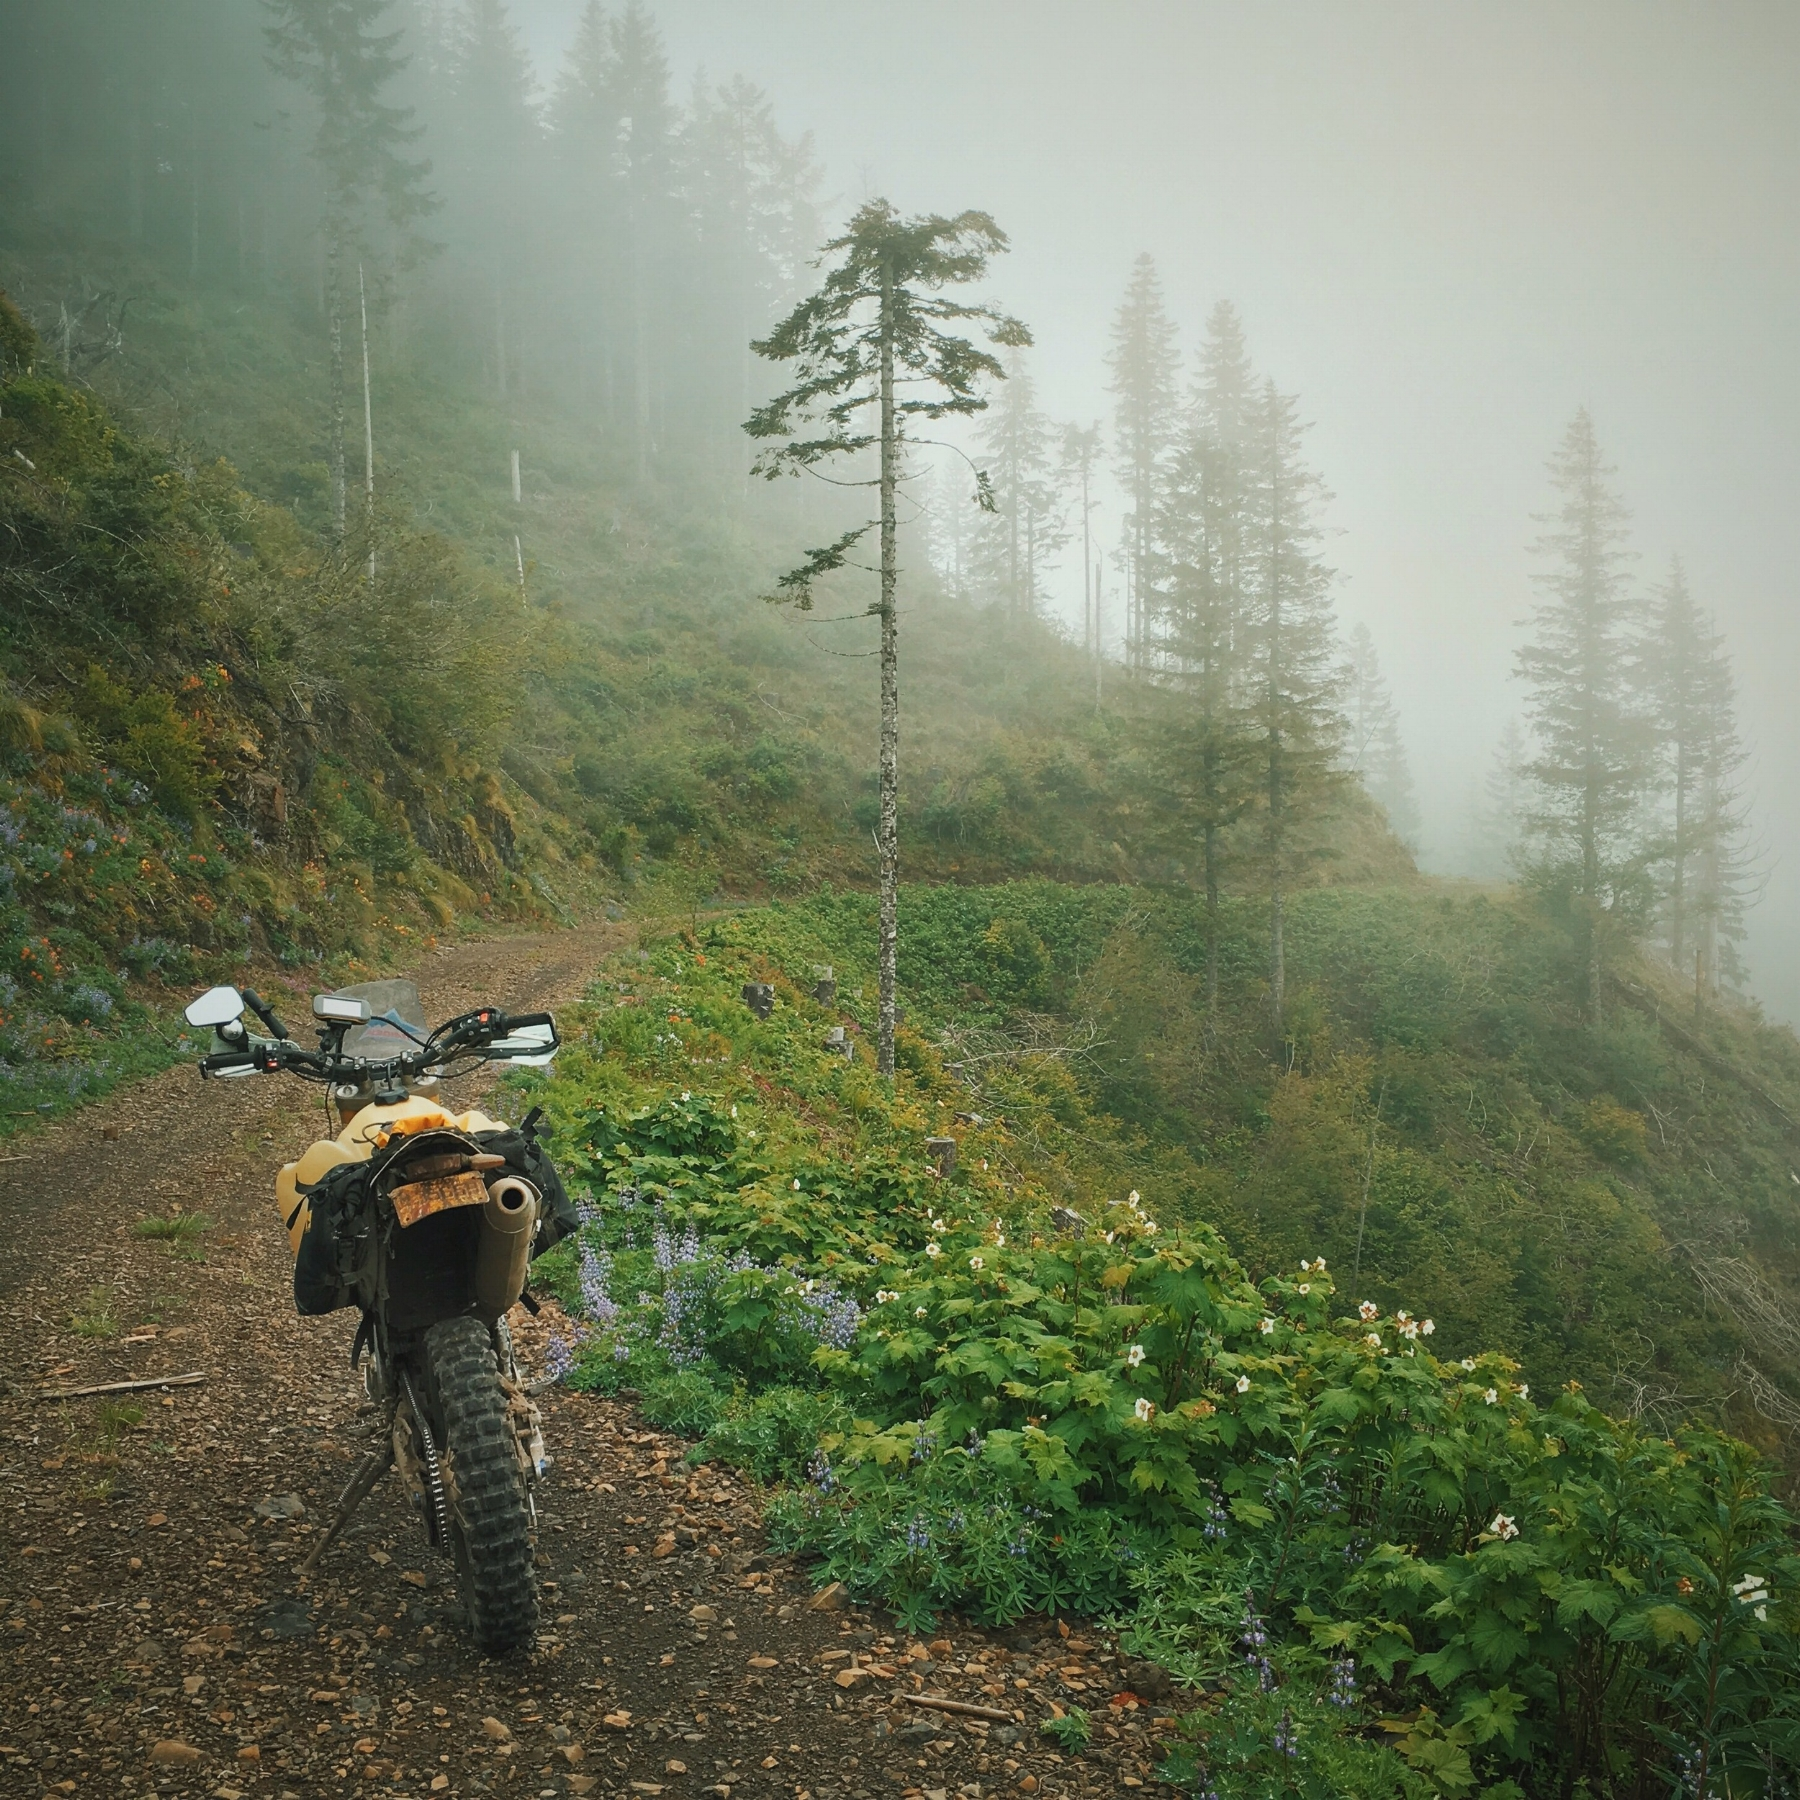 3100 feet, Fb 8N Road, Tillamook Forest, Oregon. Hiding in these clouds are giant yellow tree-eating monsters. Be careful on those corners. ☁️🚲